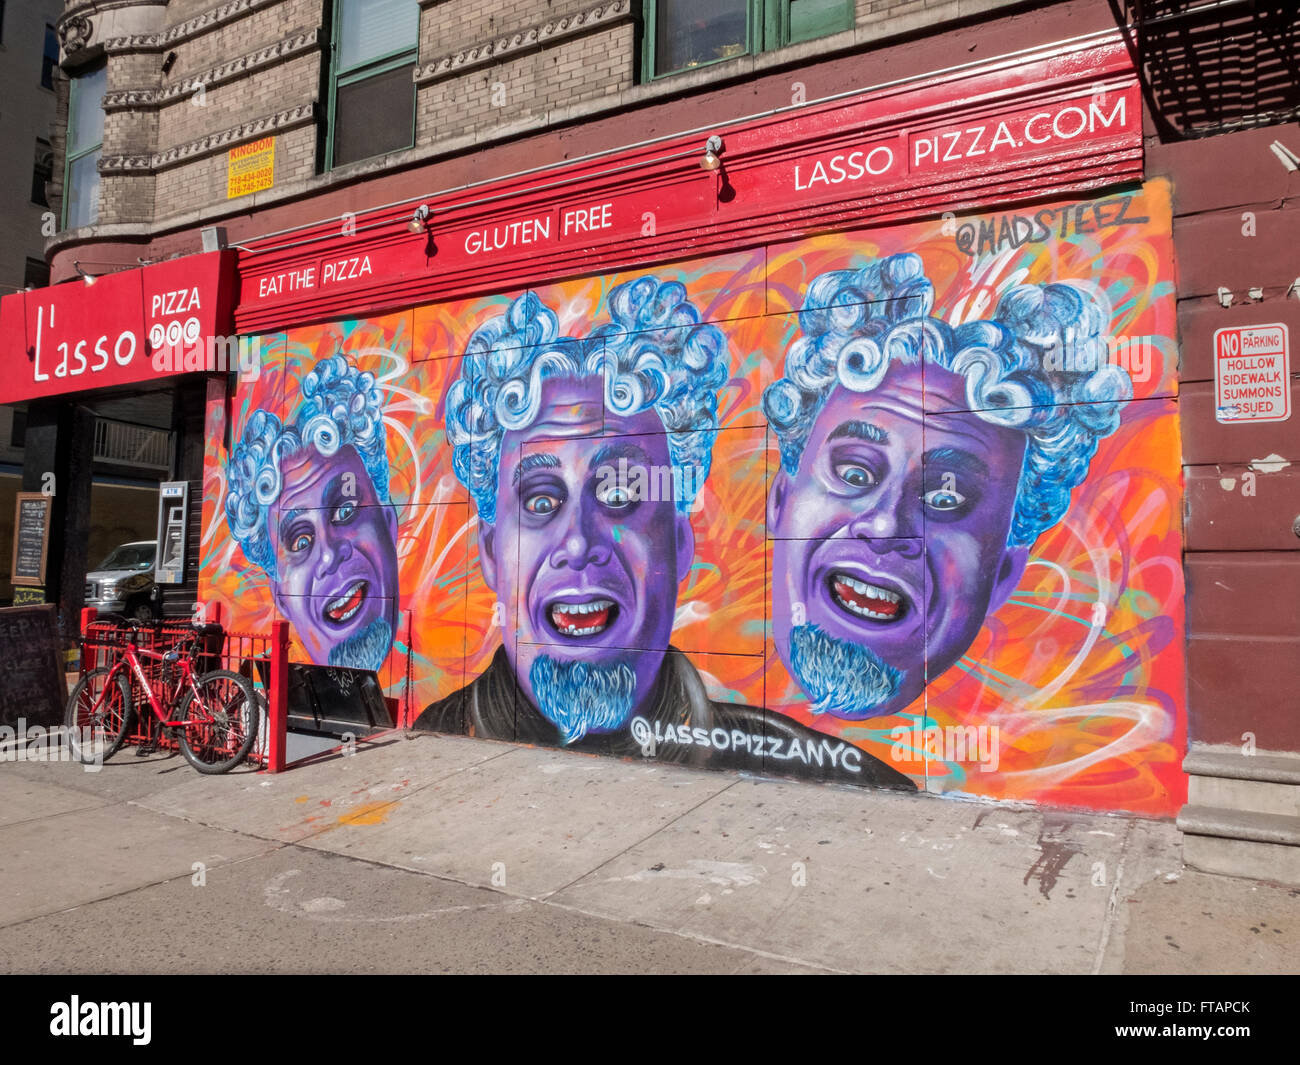 Graffiti Wall At The Side Of Lasso Italian Restaurant On Kenmare Street Corner Of Mott In The Nolita Section Of Downtown Nyc